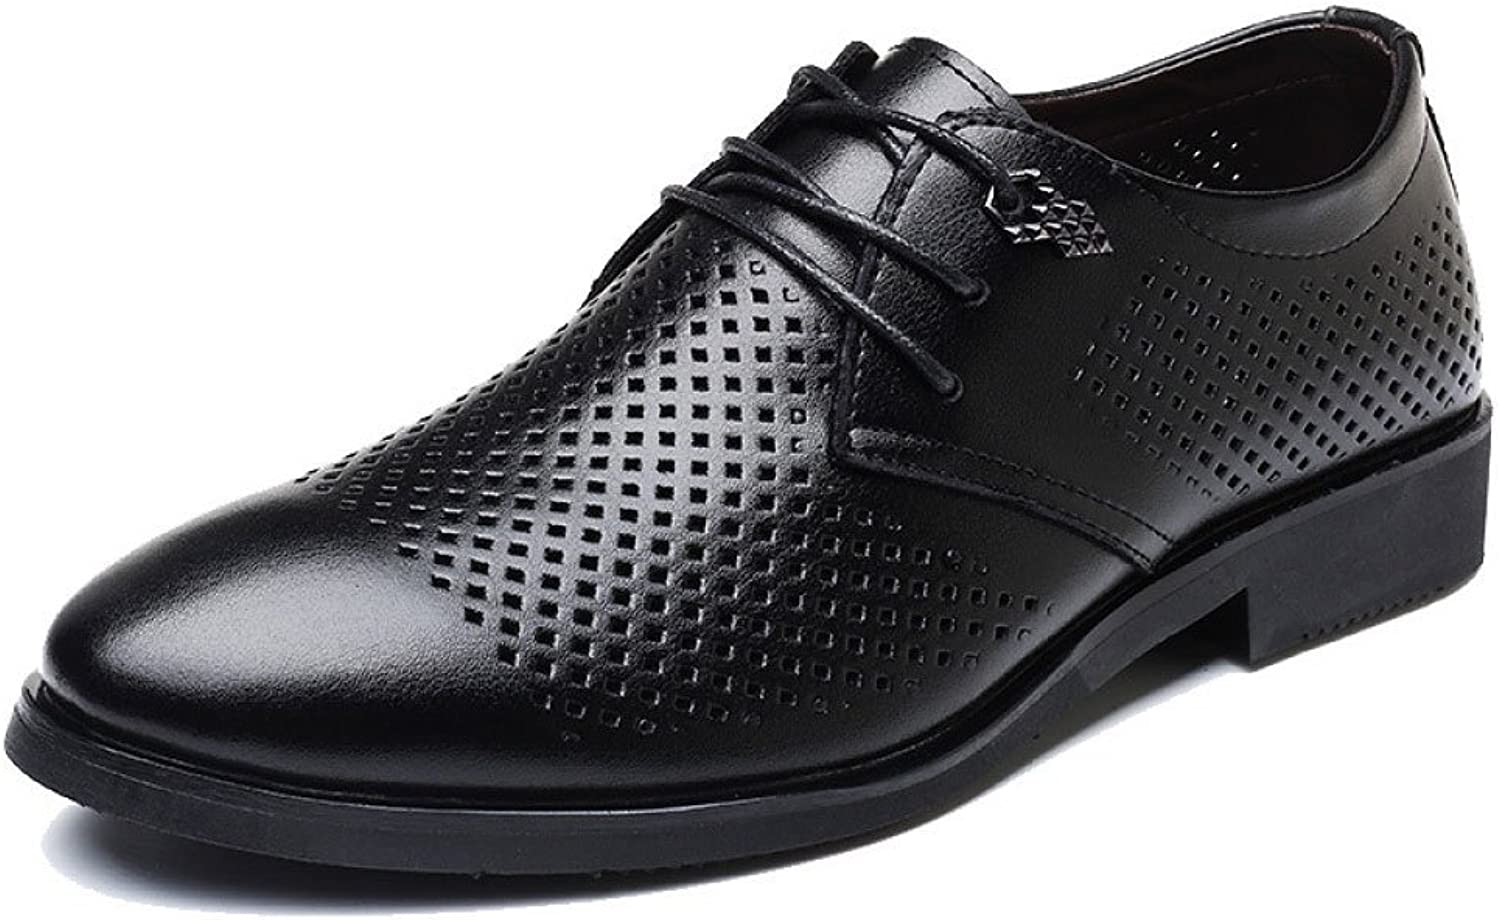 LEDLFIE Men's Real Leather shoes Fashion Breathable Casual Leather shoes Hollow Lace-up shoes